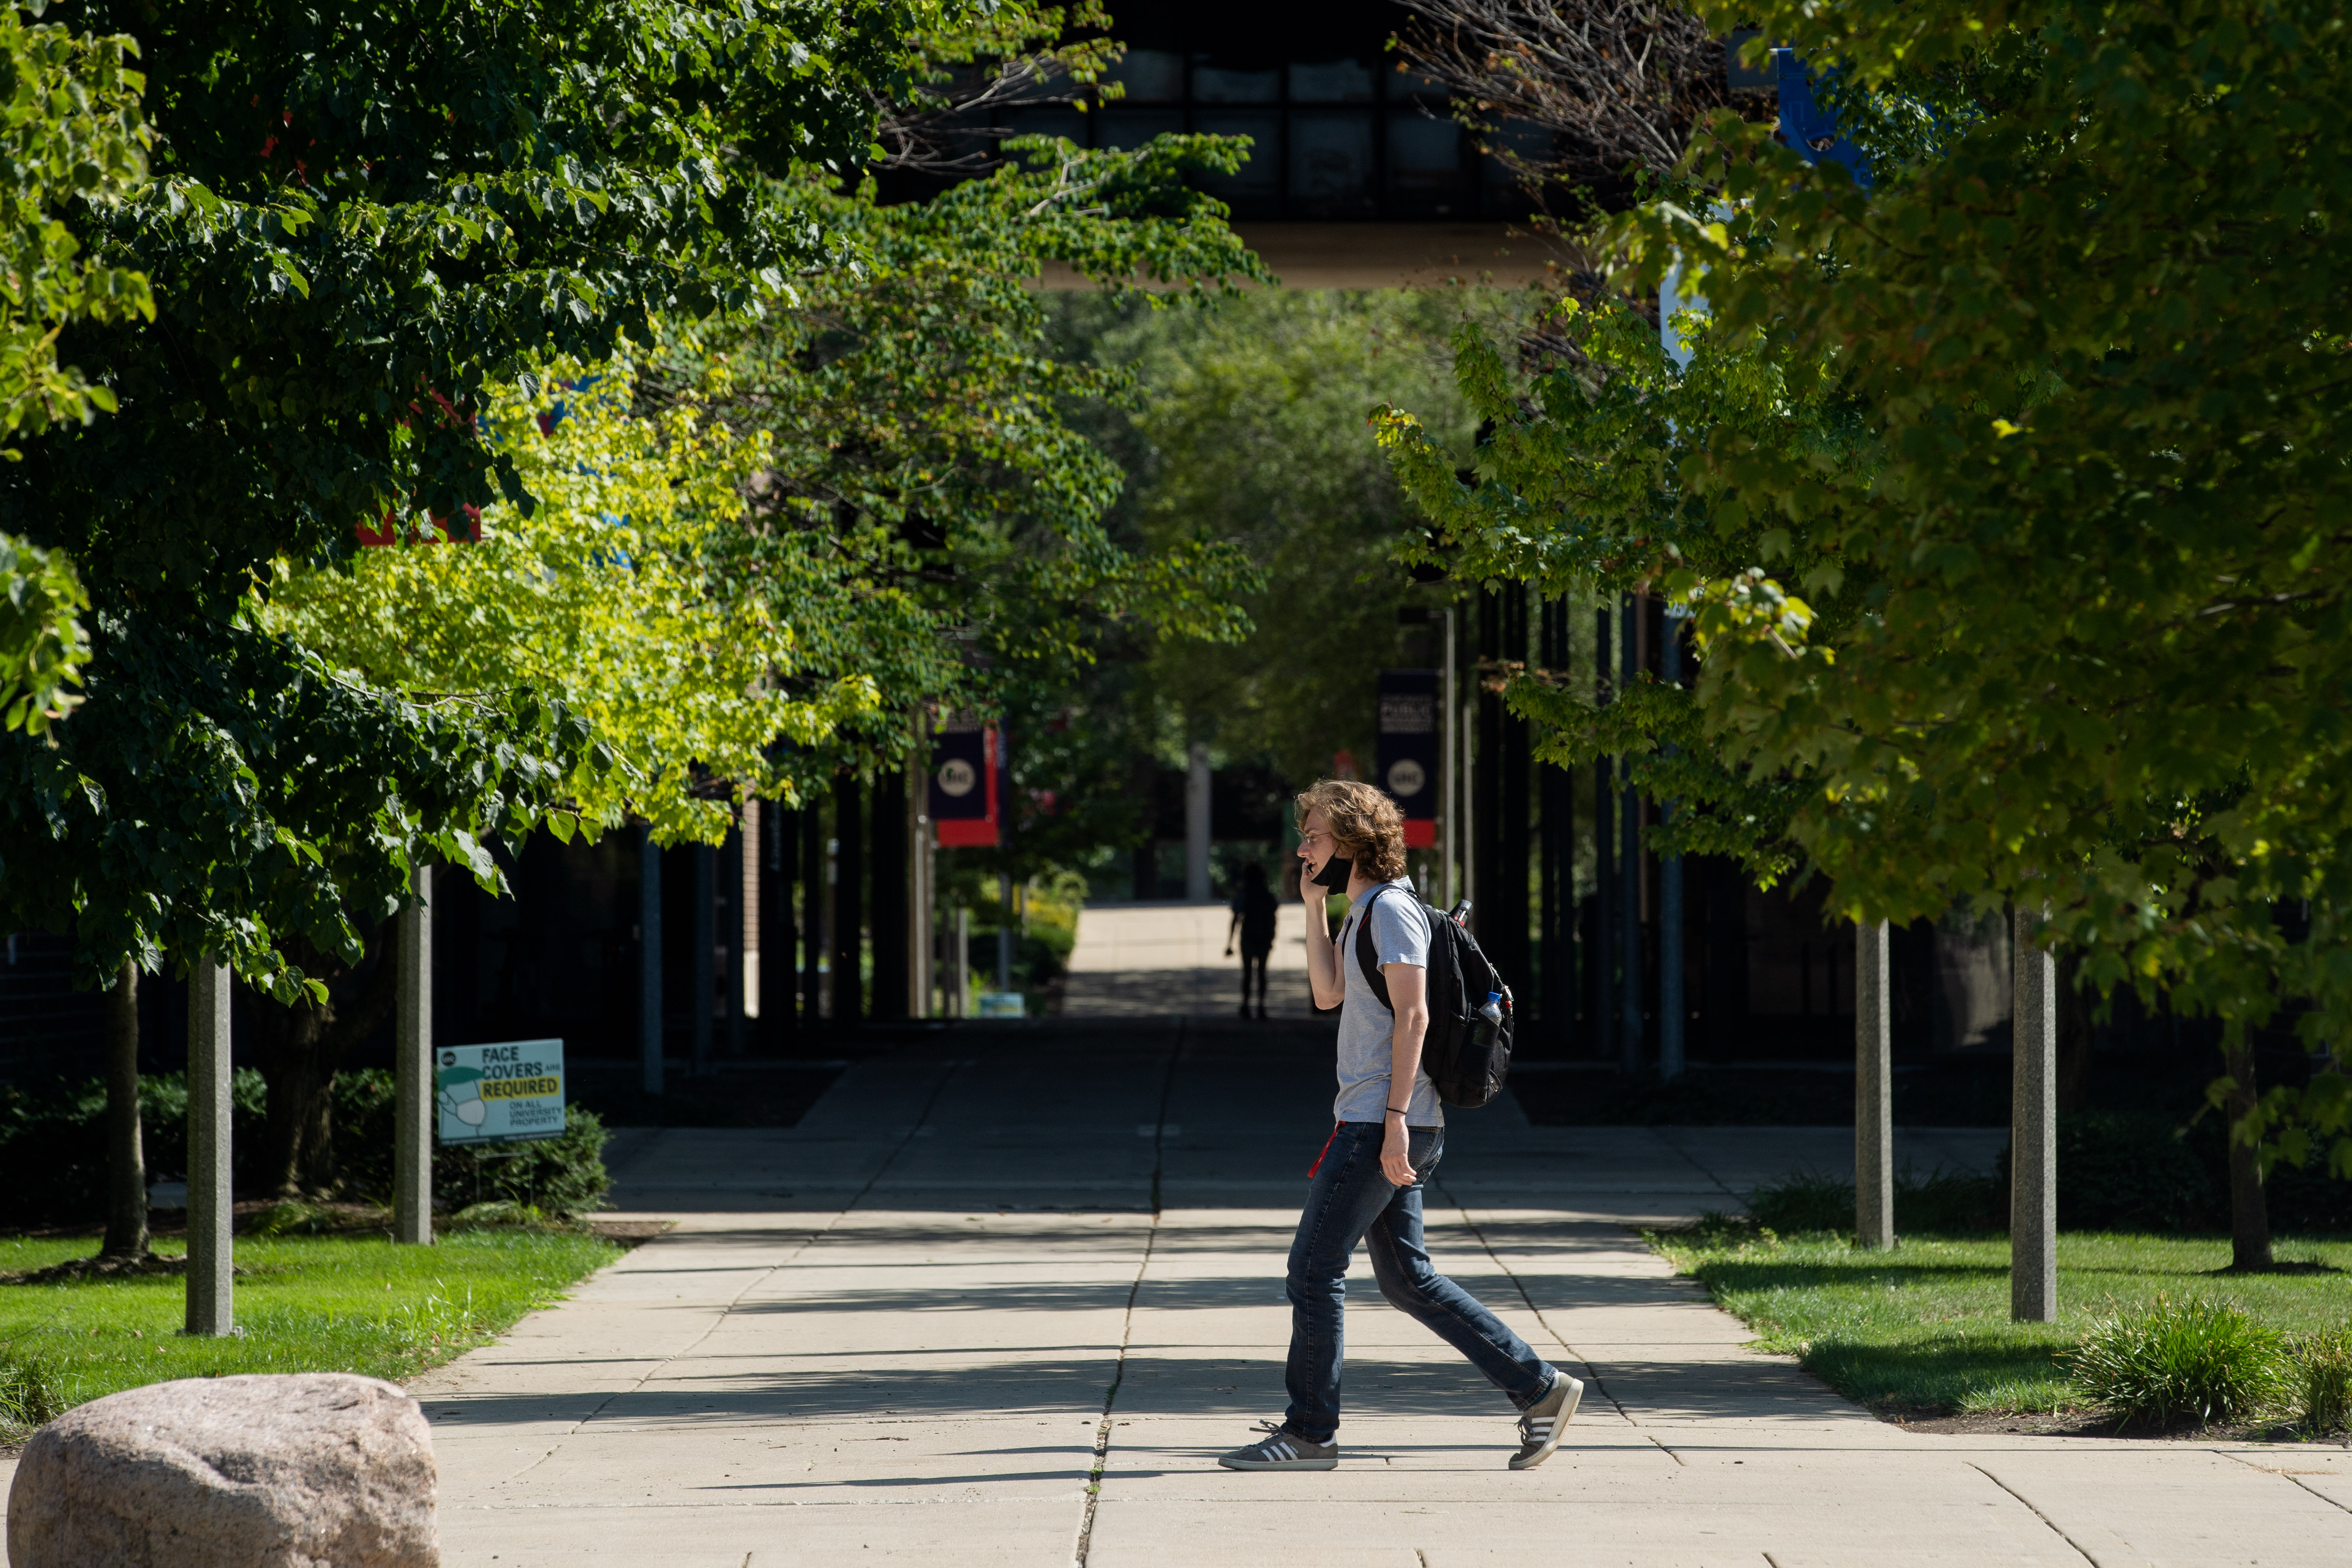 A person wearing a mask walks around the campus of University of Illinois at Chicago Friday afternoon, Aug. 14, 2020.   Pat Nabong/Sun-Times